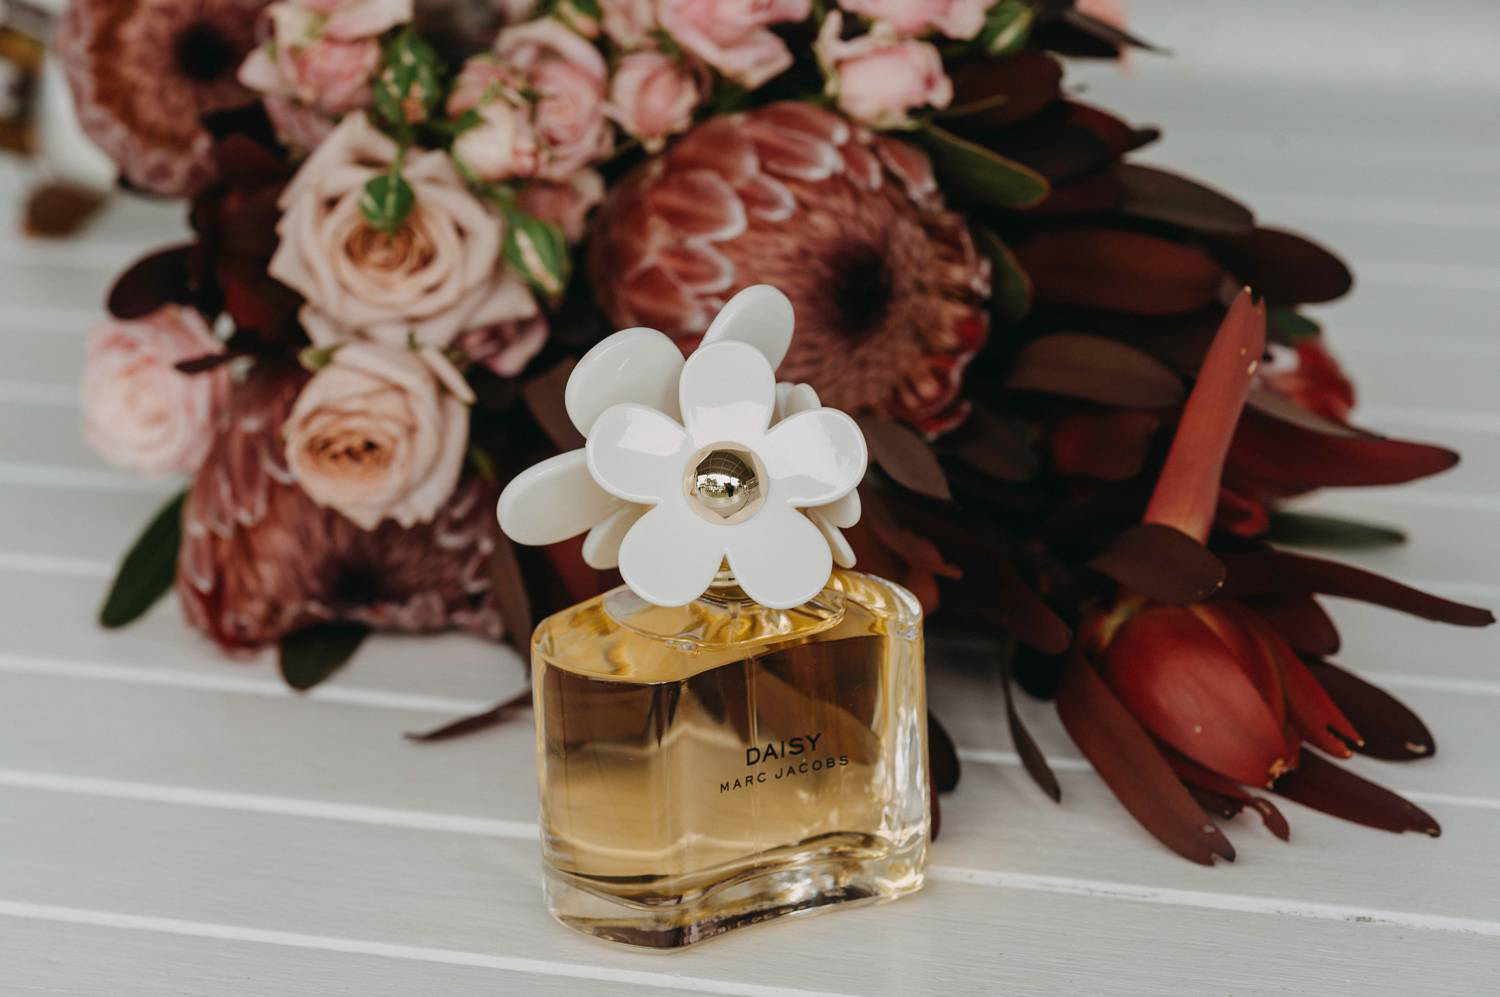 Perfume bottle in front of flowers